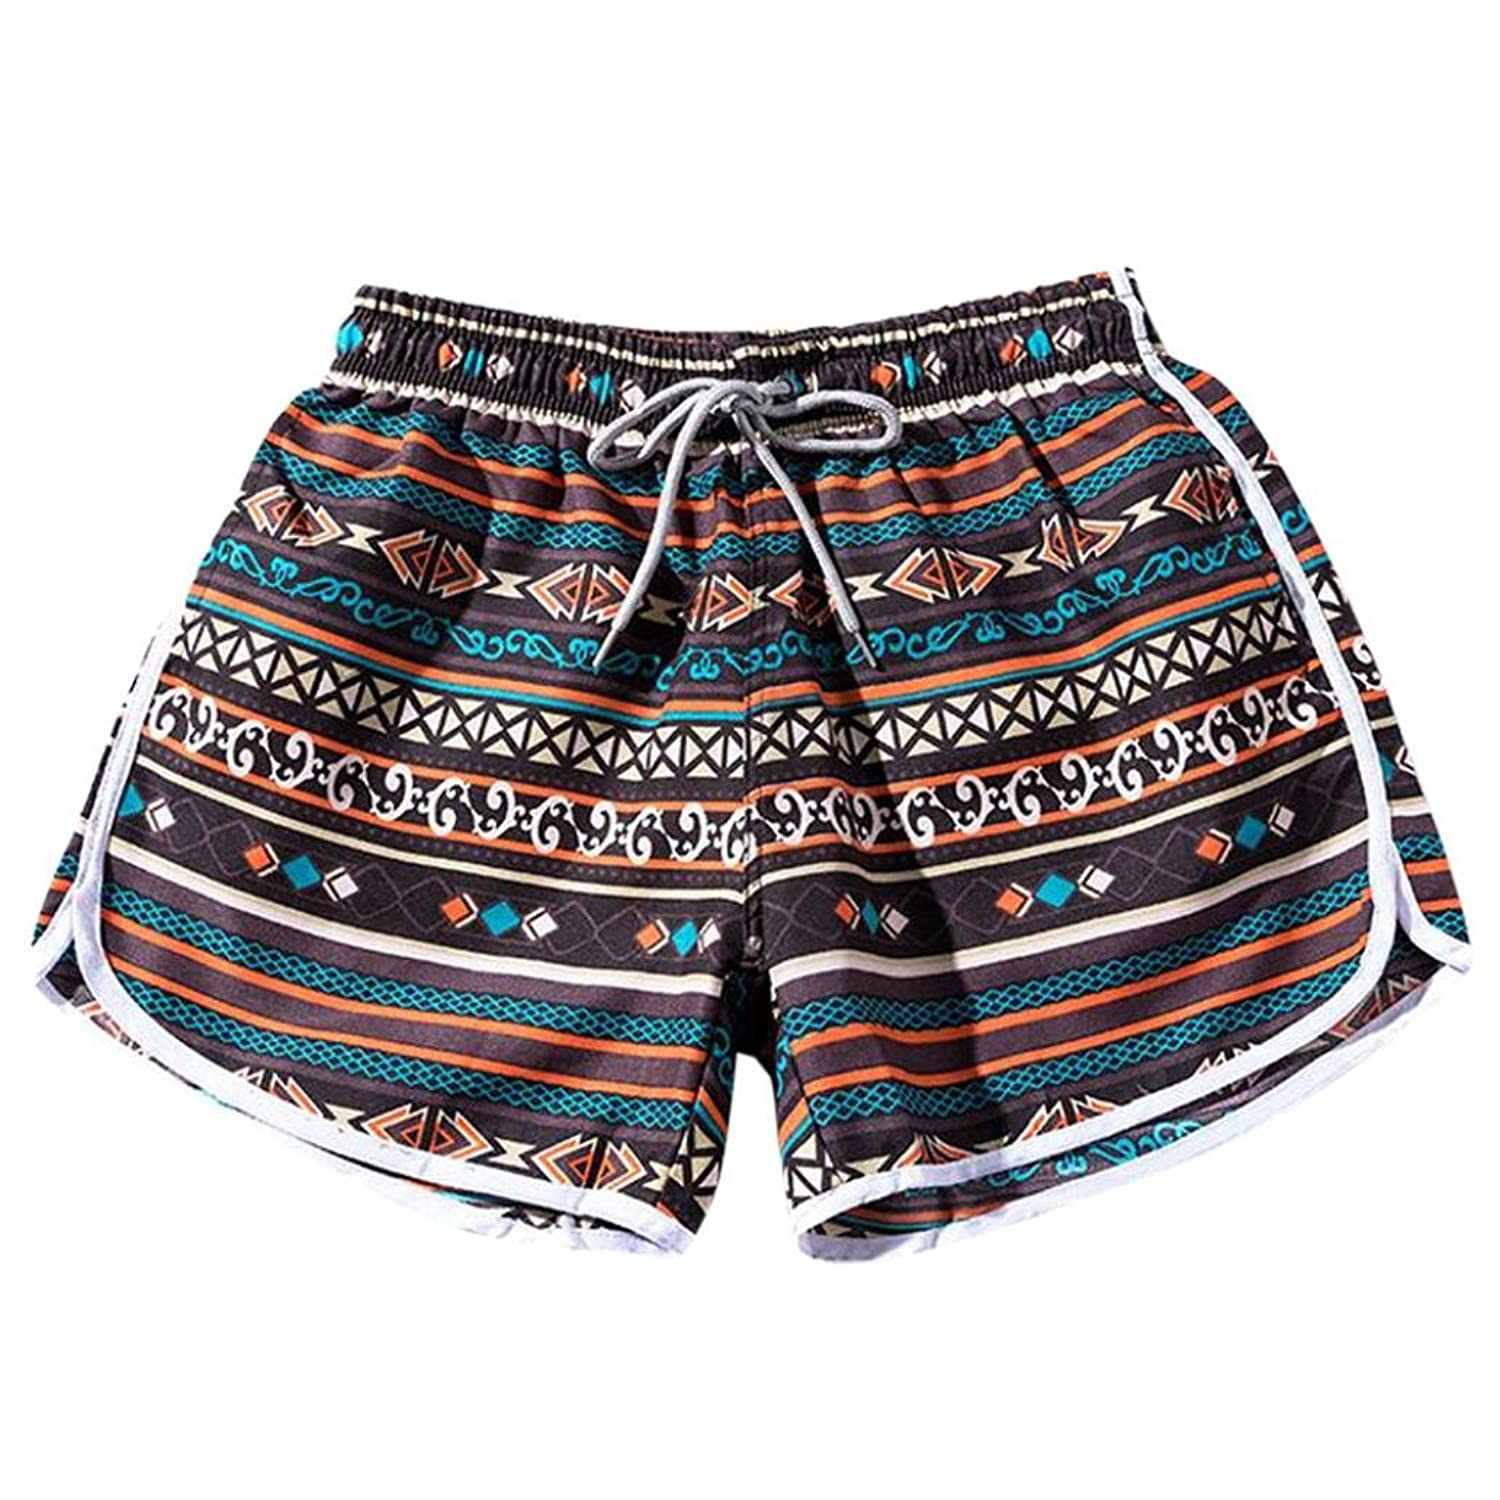 Hukz - Short de bain - Fille Marron marron